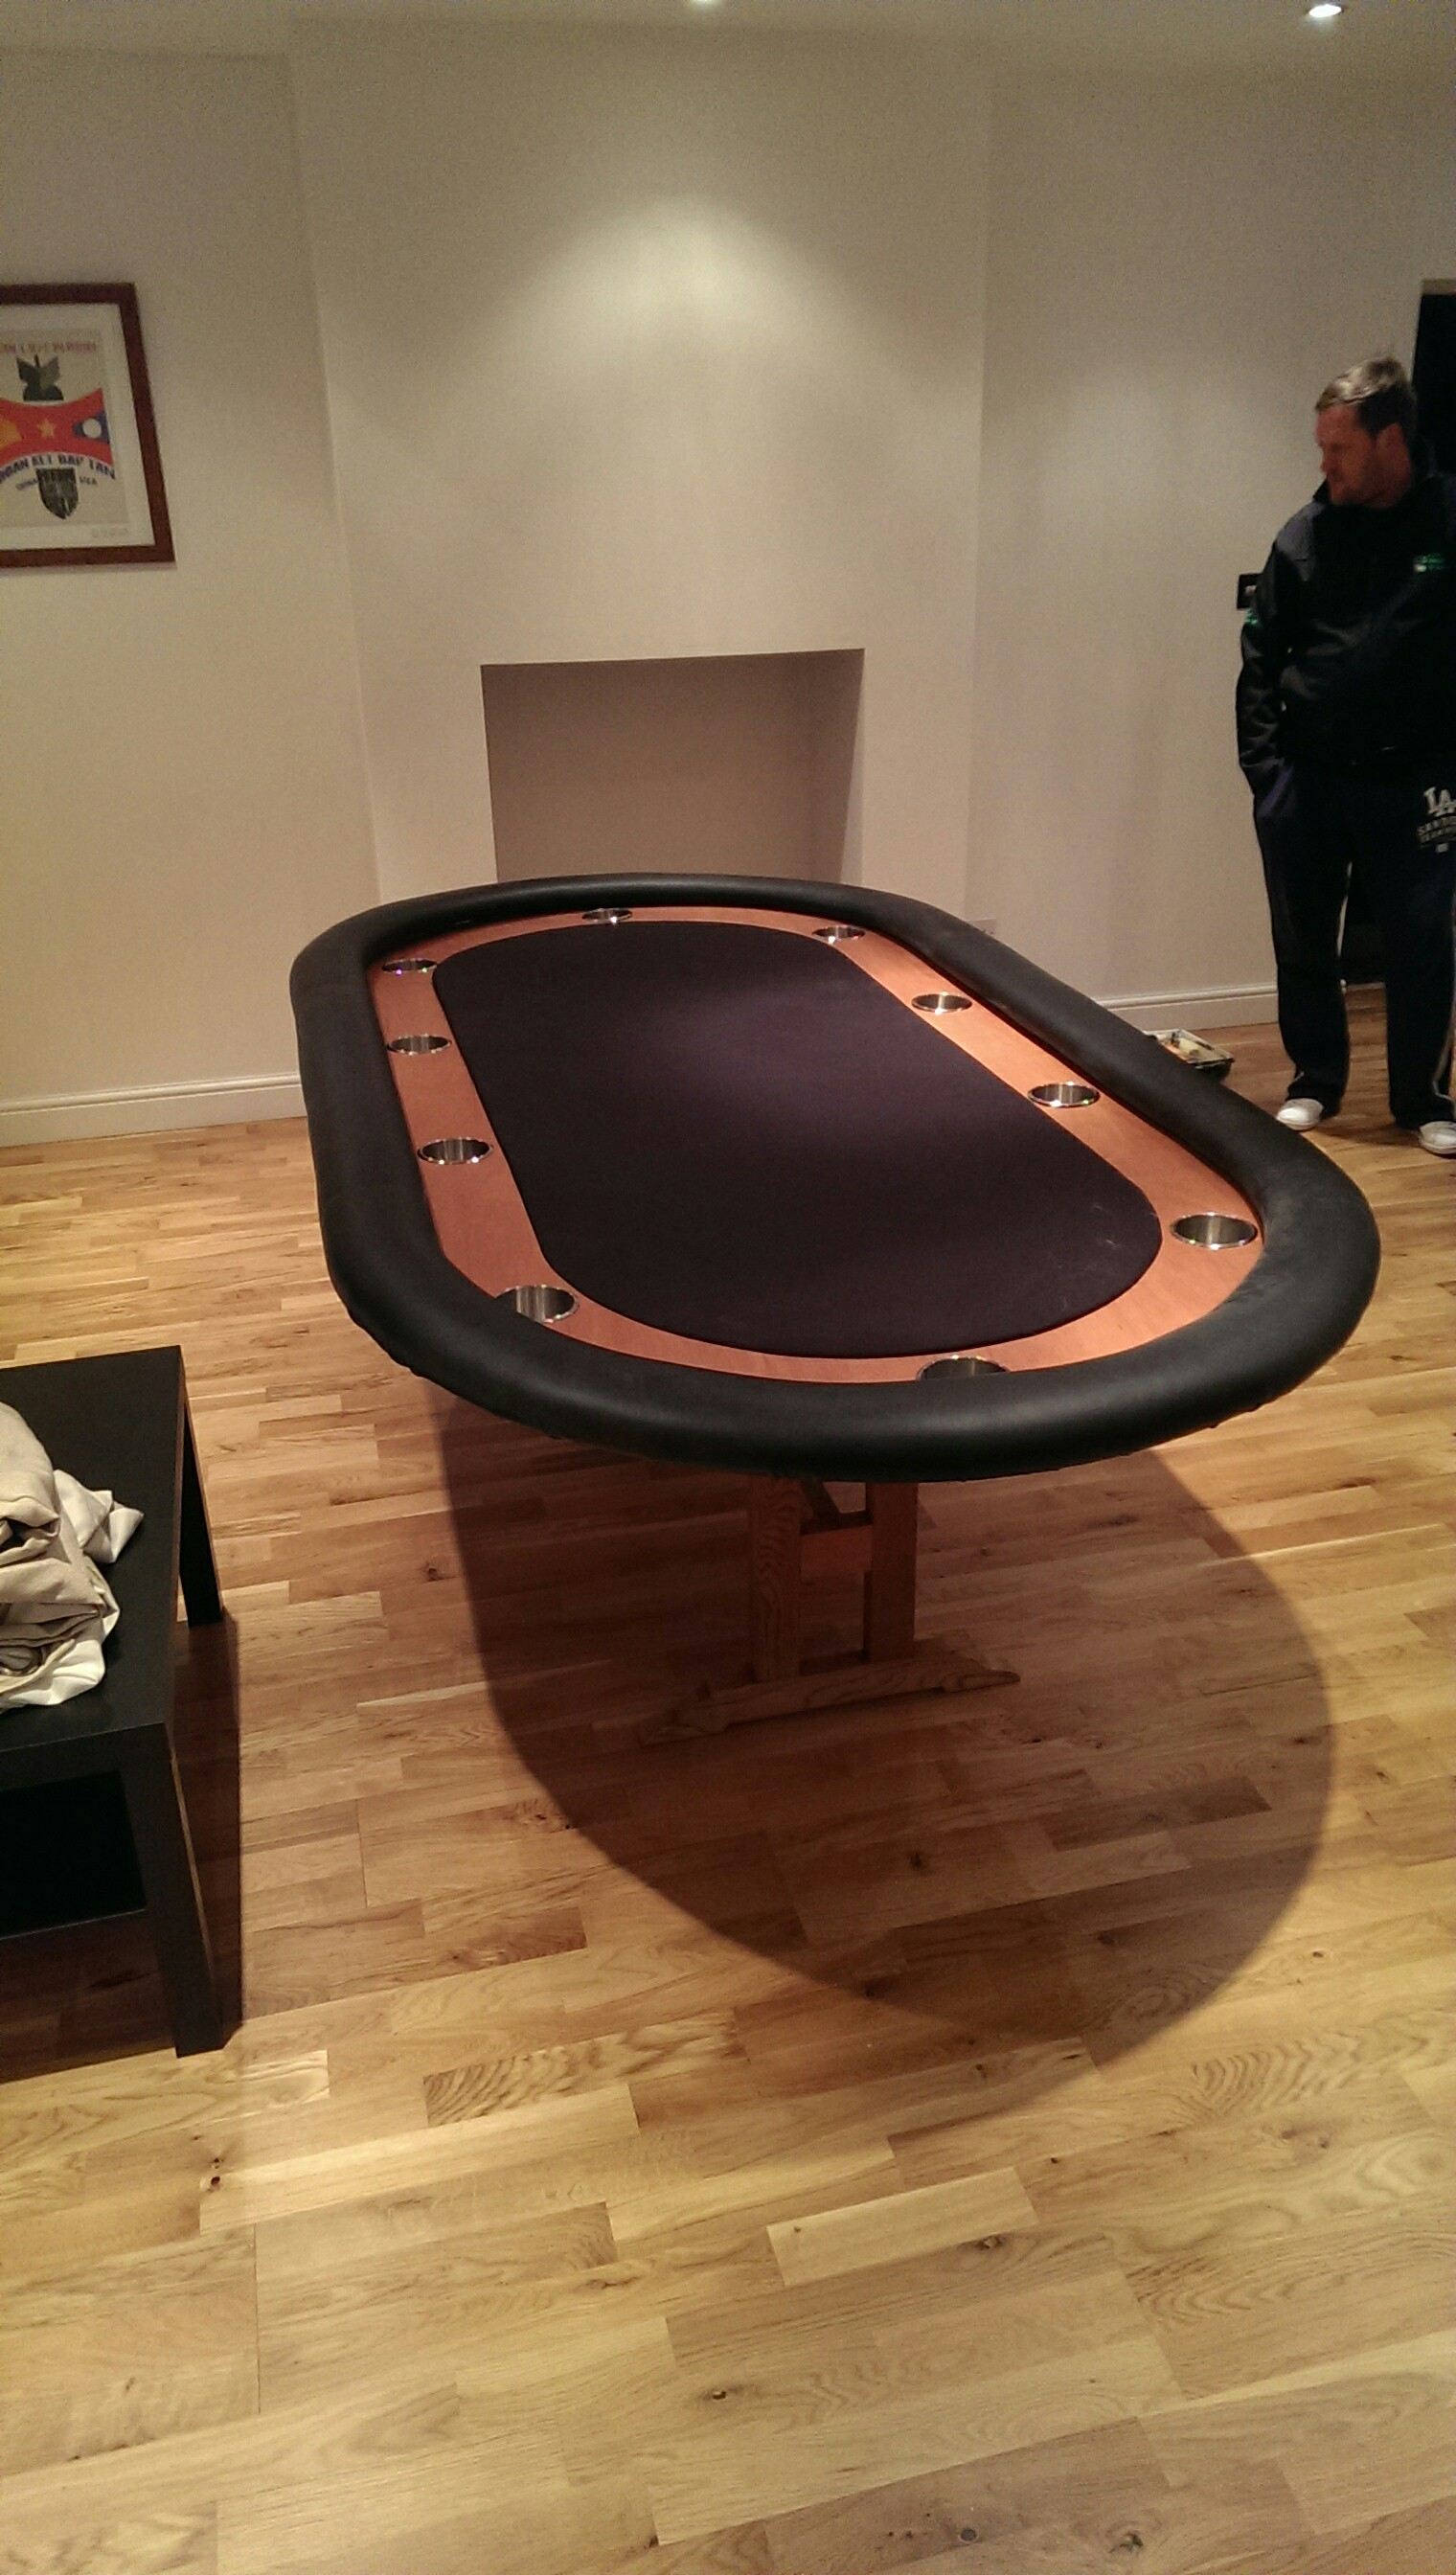 Poker table top for sale in uk 116 used poker table tops for 10 seater table for sale